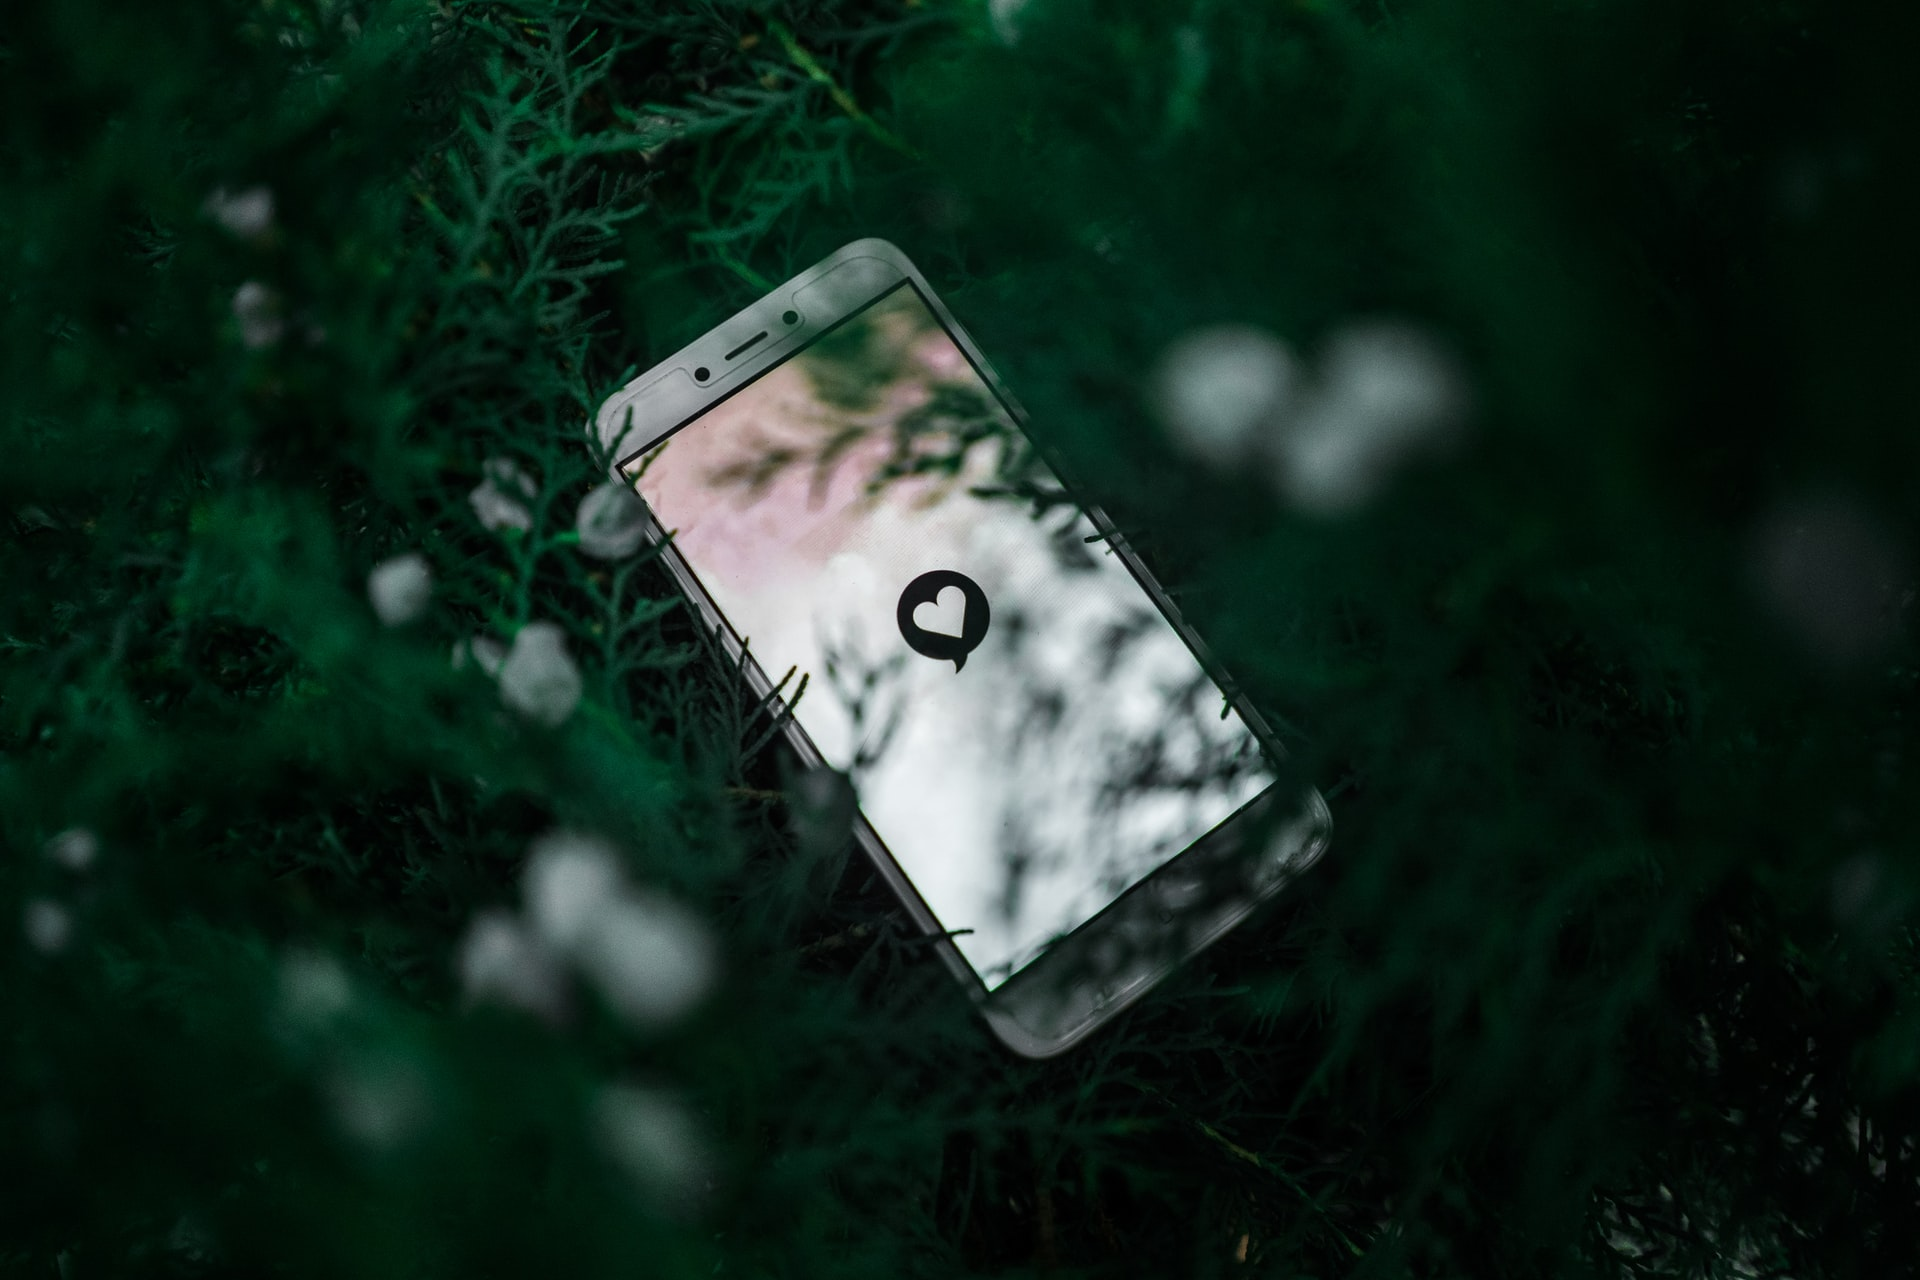 Cell phone in the bushes with an online dating app on the screen